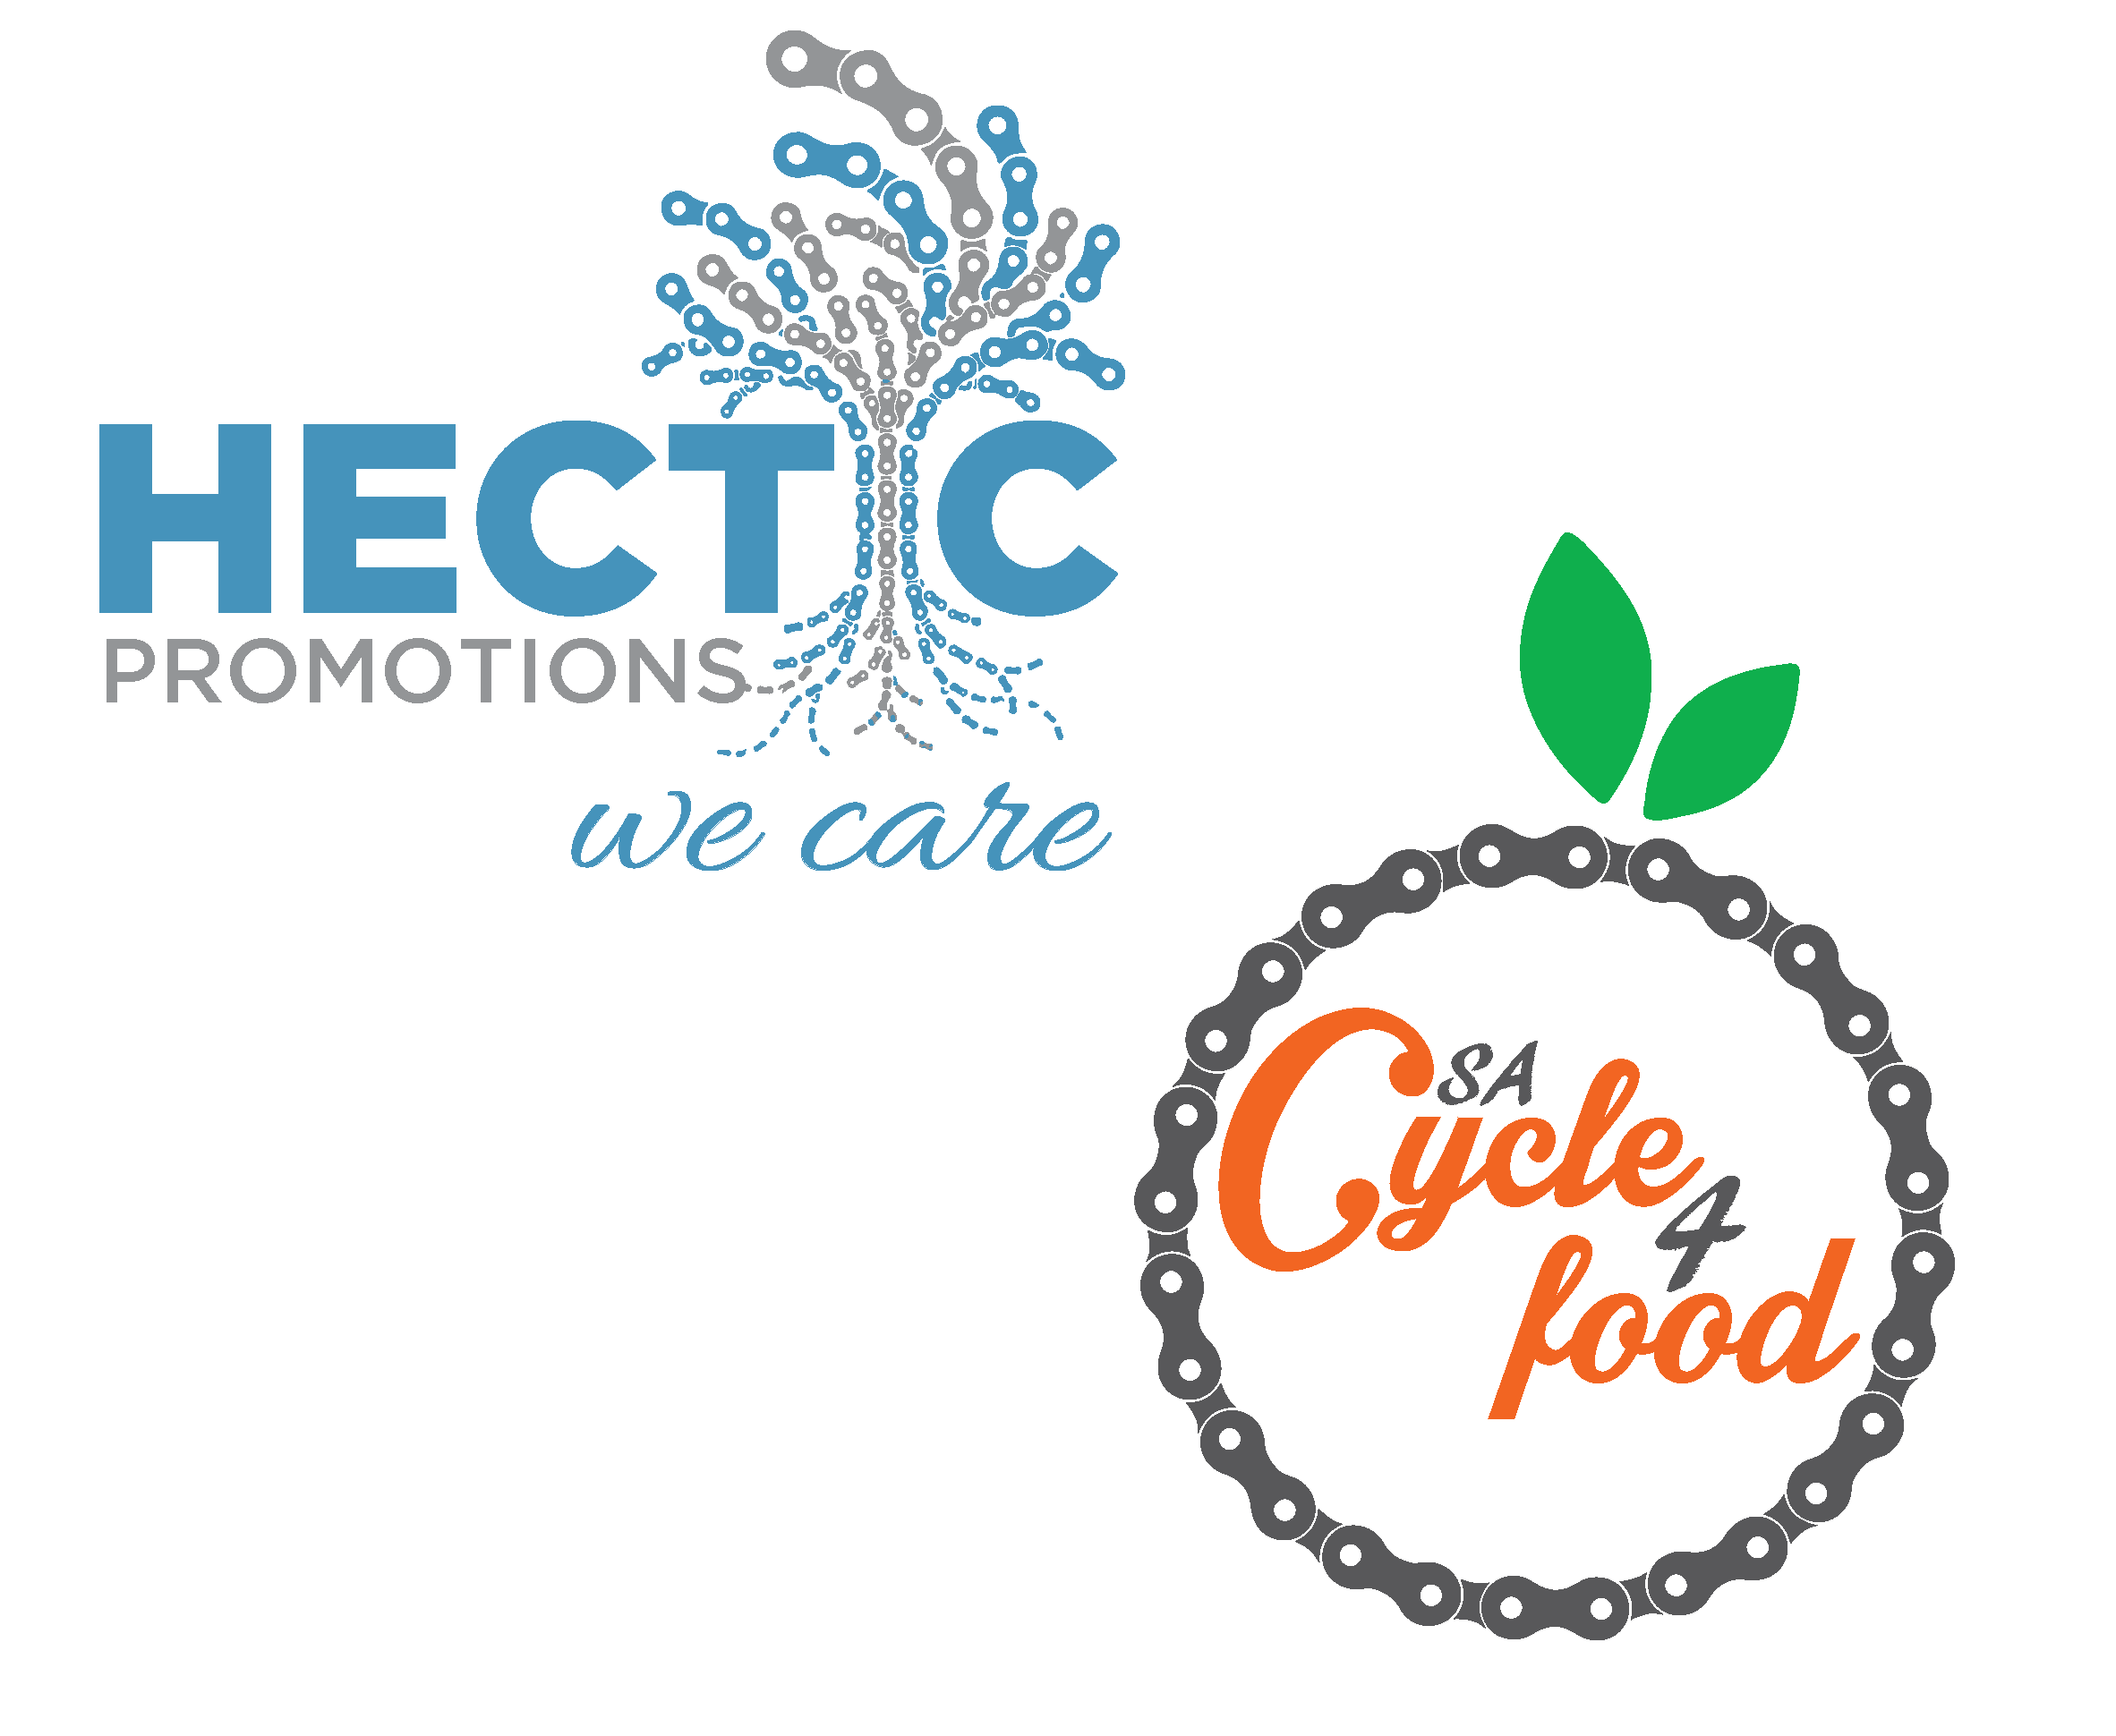 Cycle4Food+Hectic-01